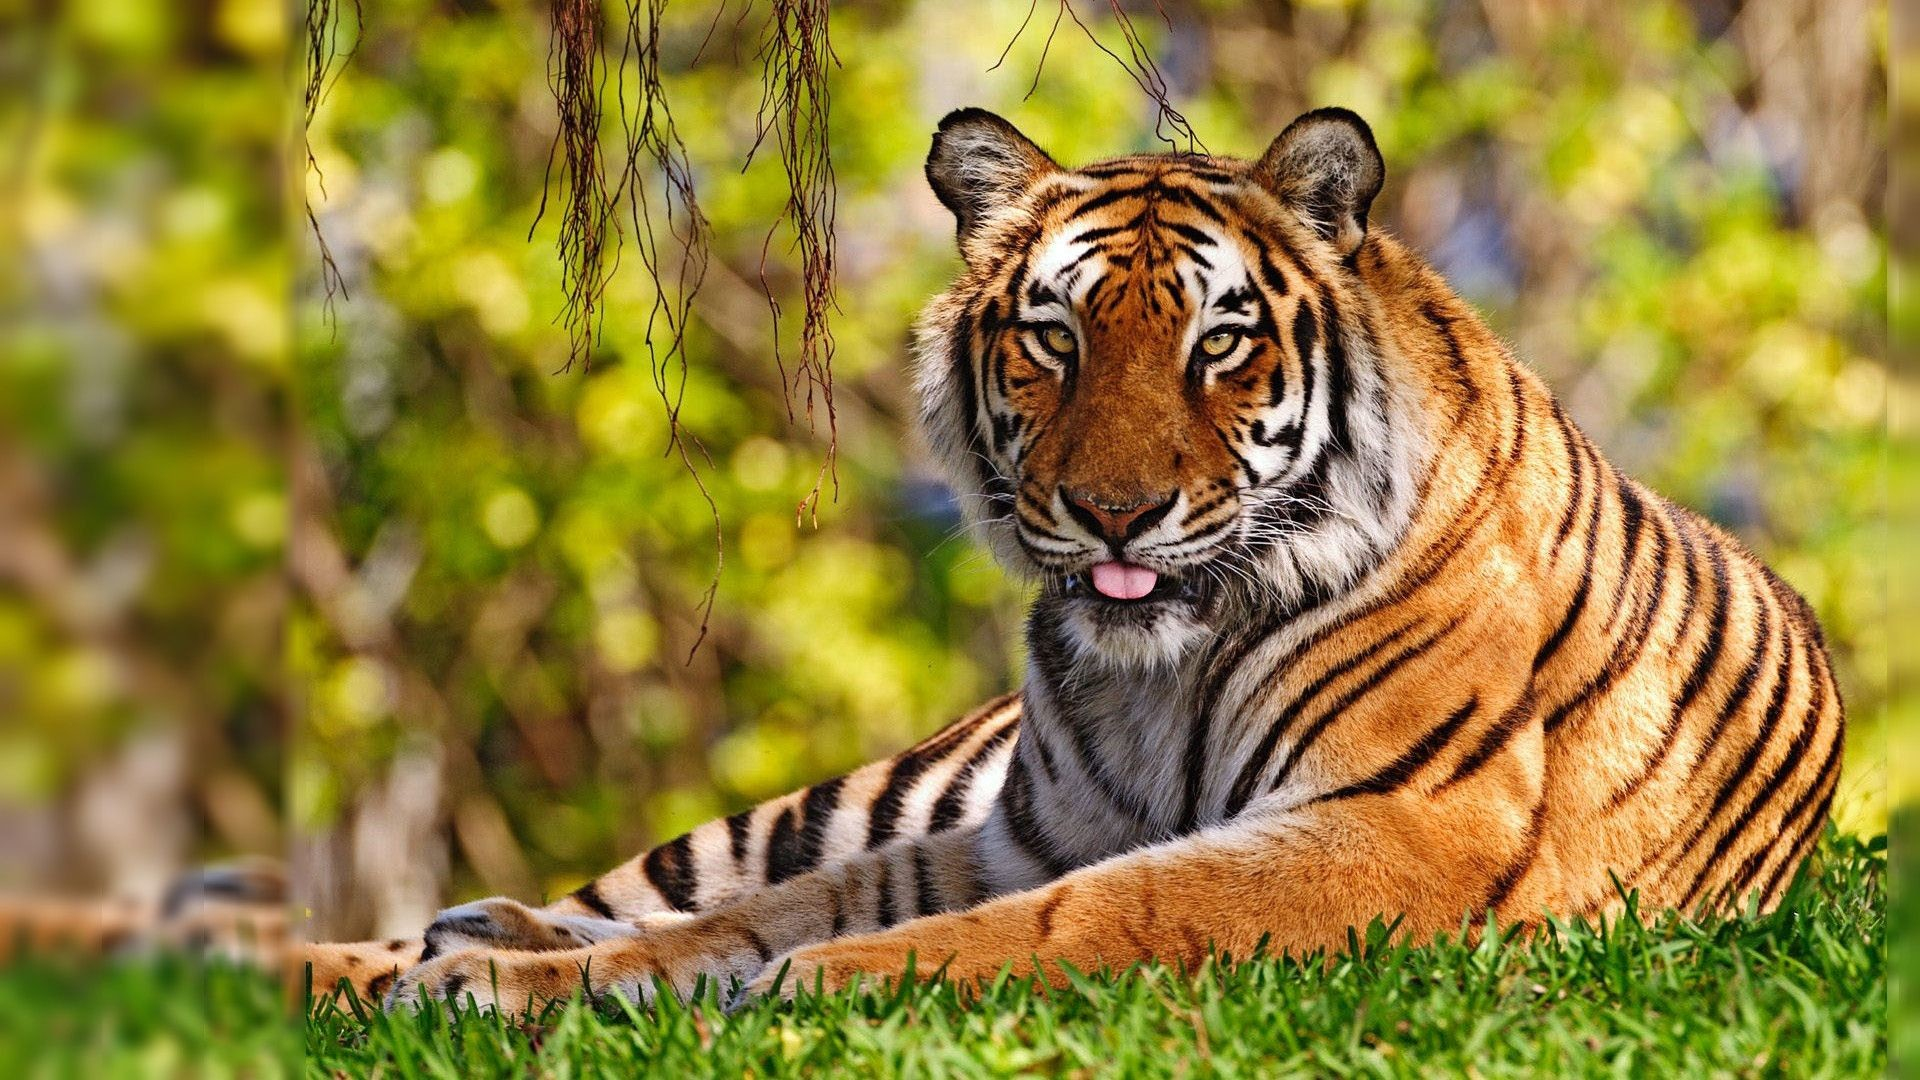 Tiger Wallpapers For Desktop 60 Pictures